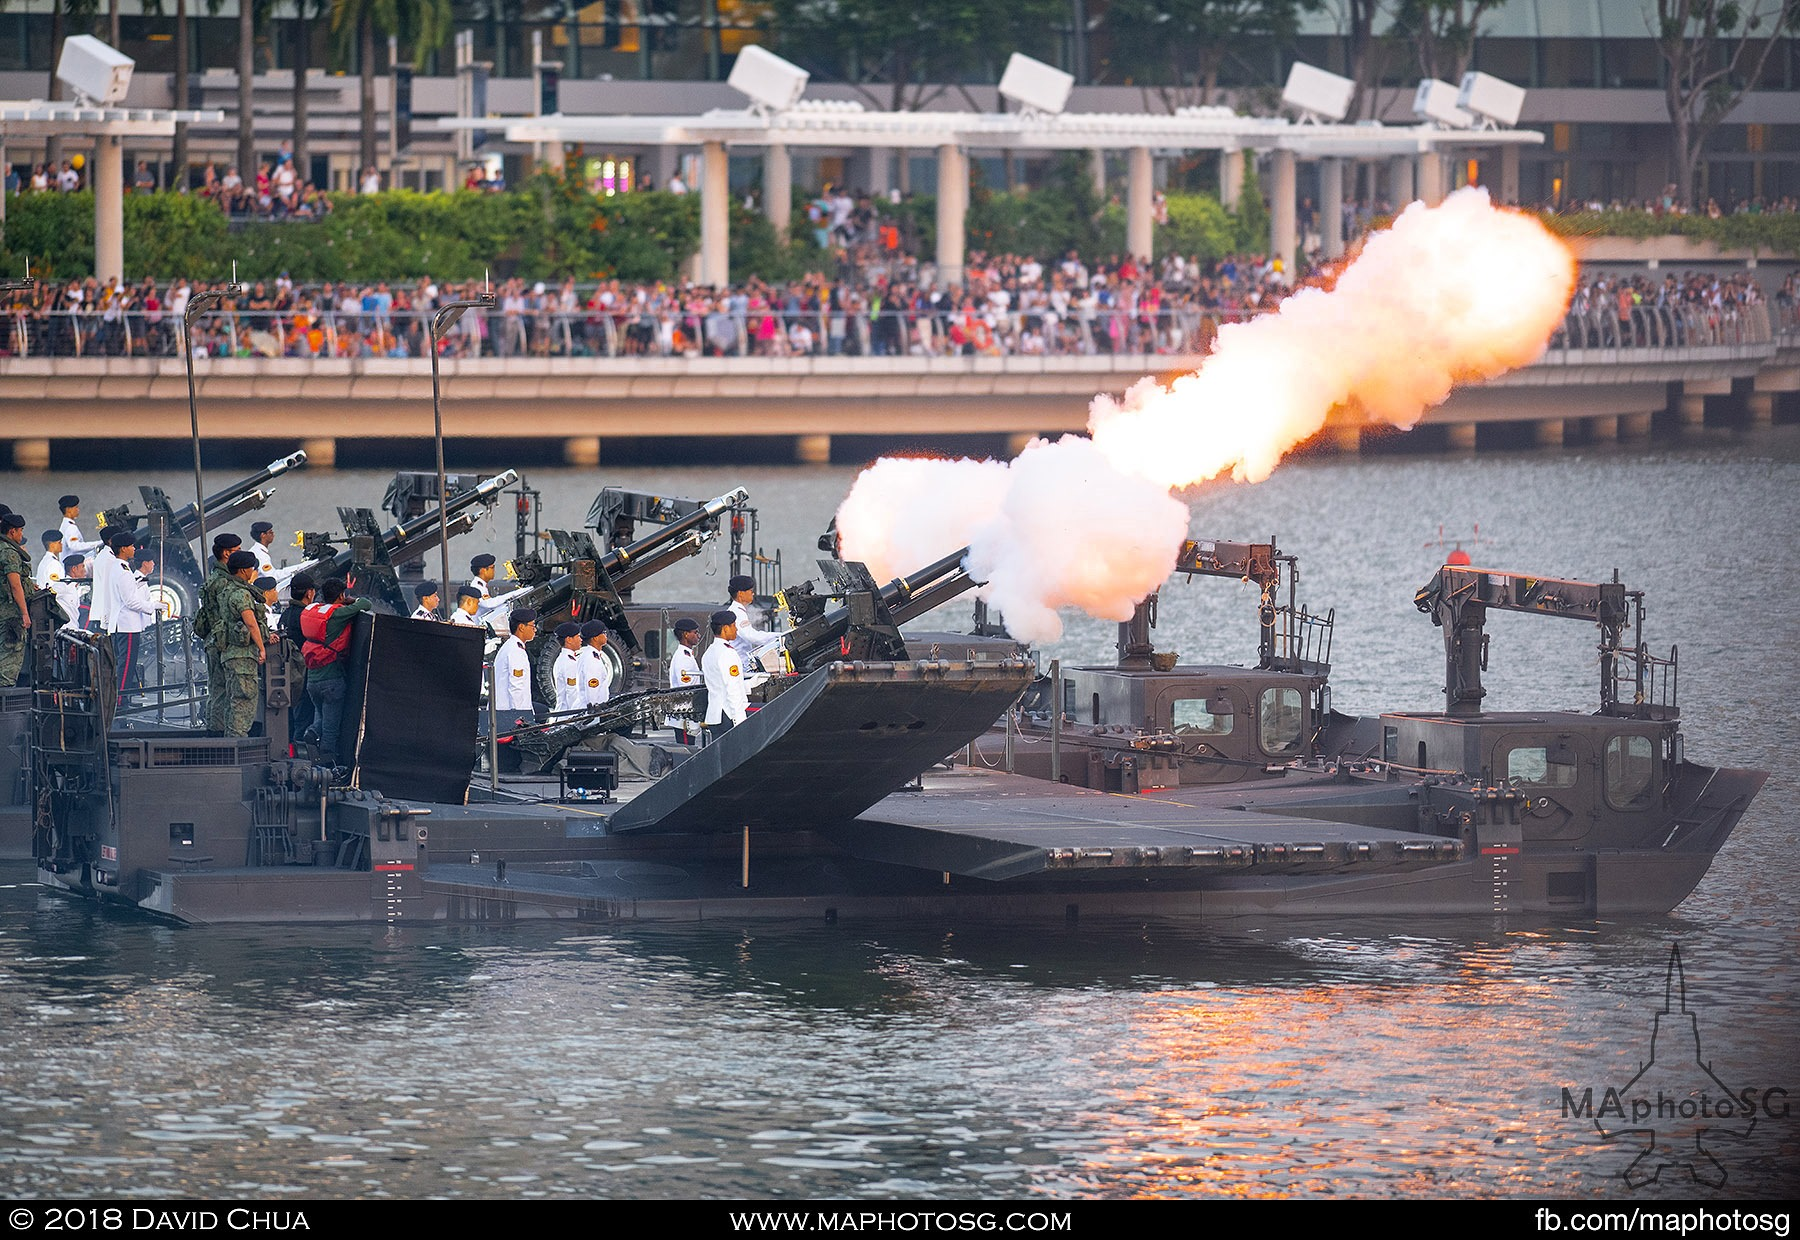 22. Traditional 21-gun salute by 25 pounder howitzers.